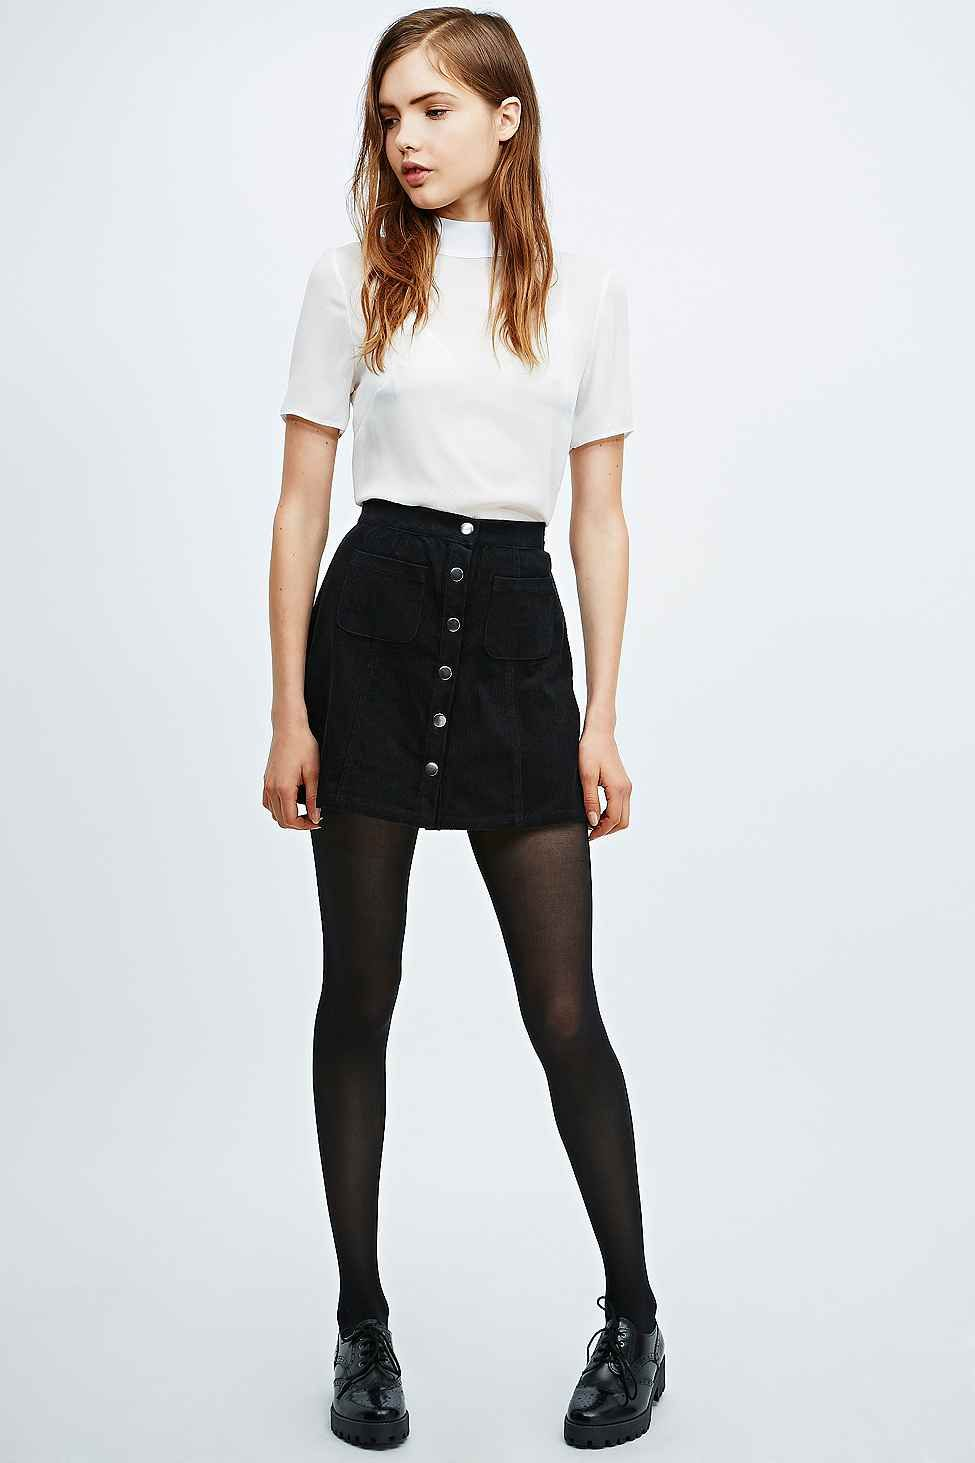 Women's Clothing Cooperative Chloe Skirt Skirts